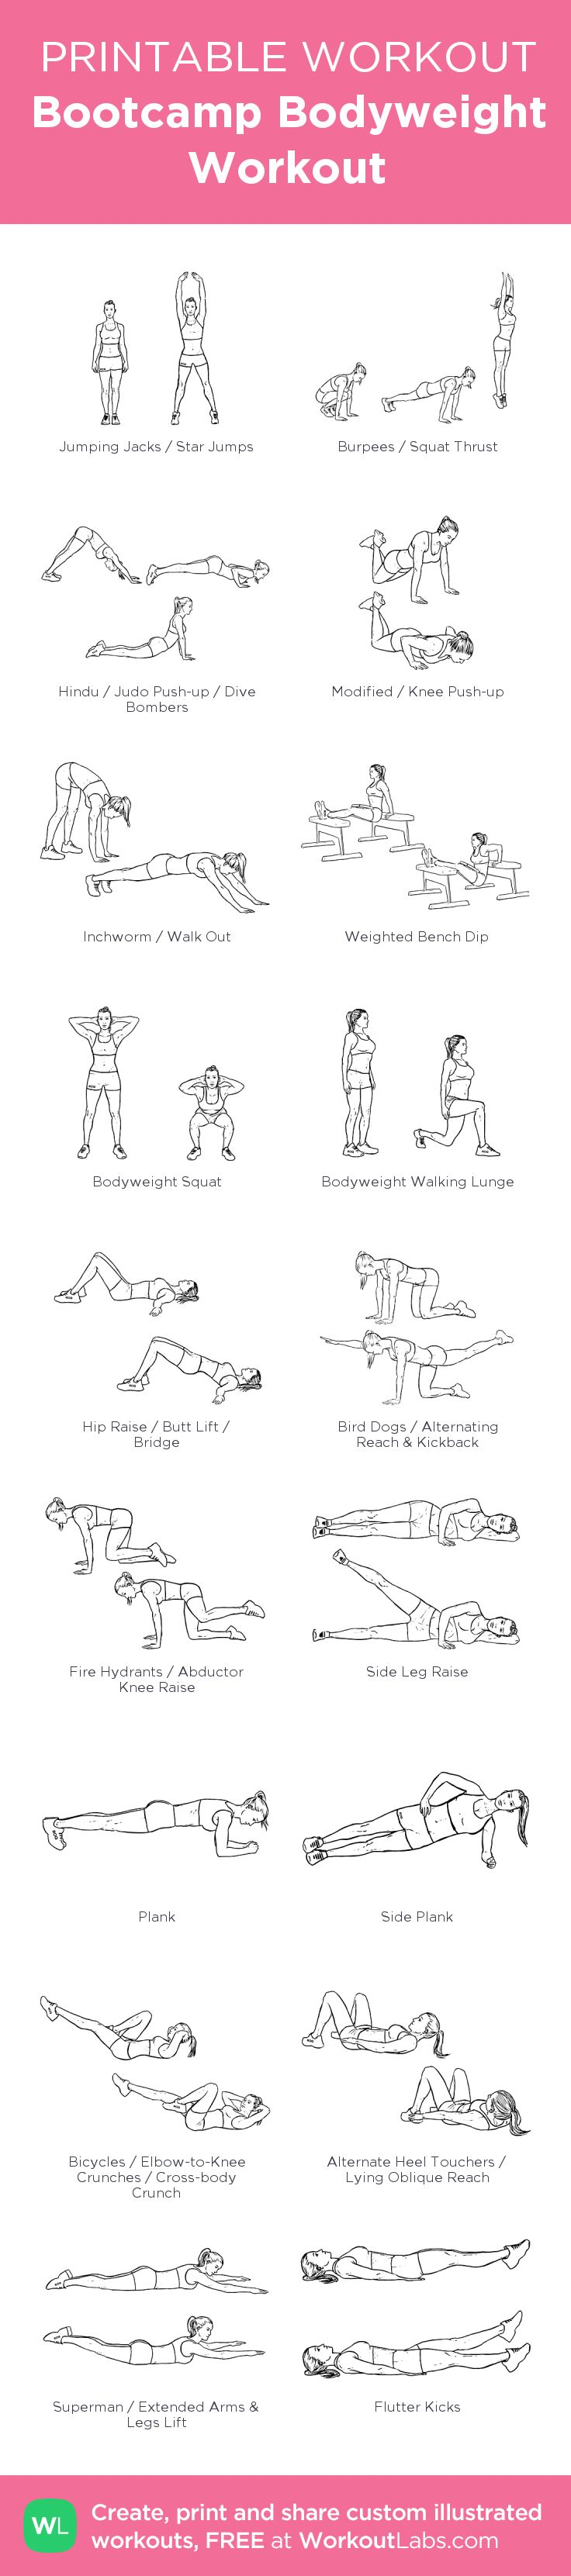 planet fitness workout plan for beginners